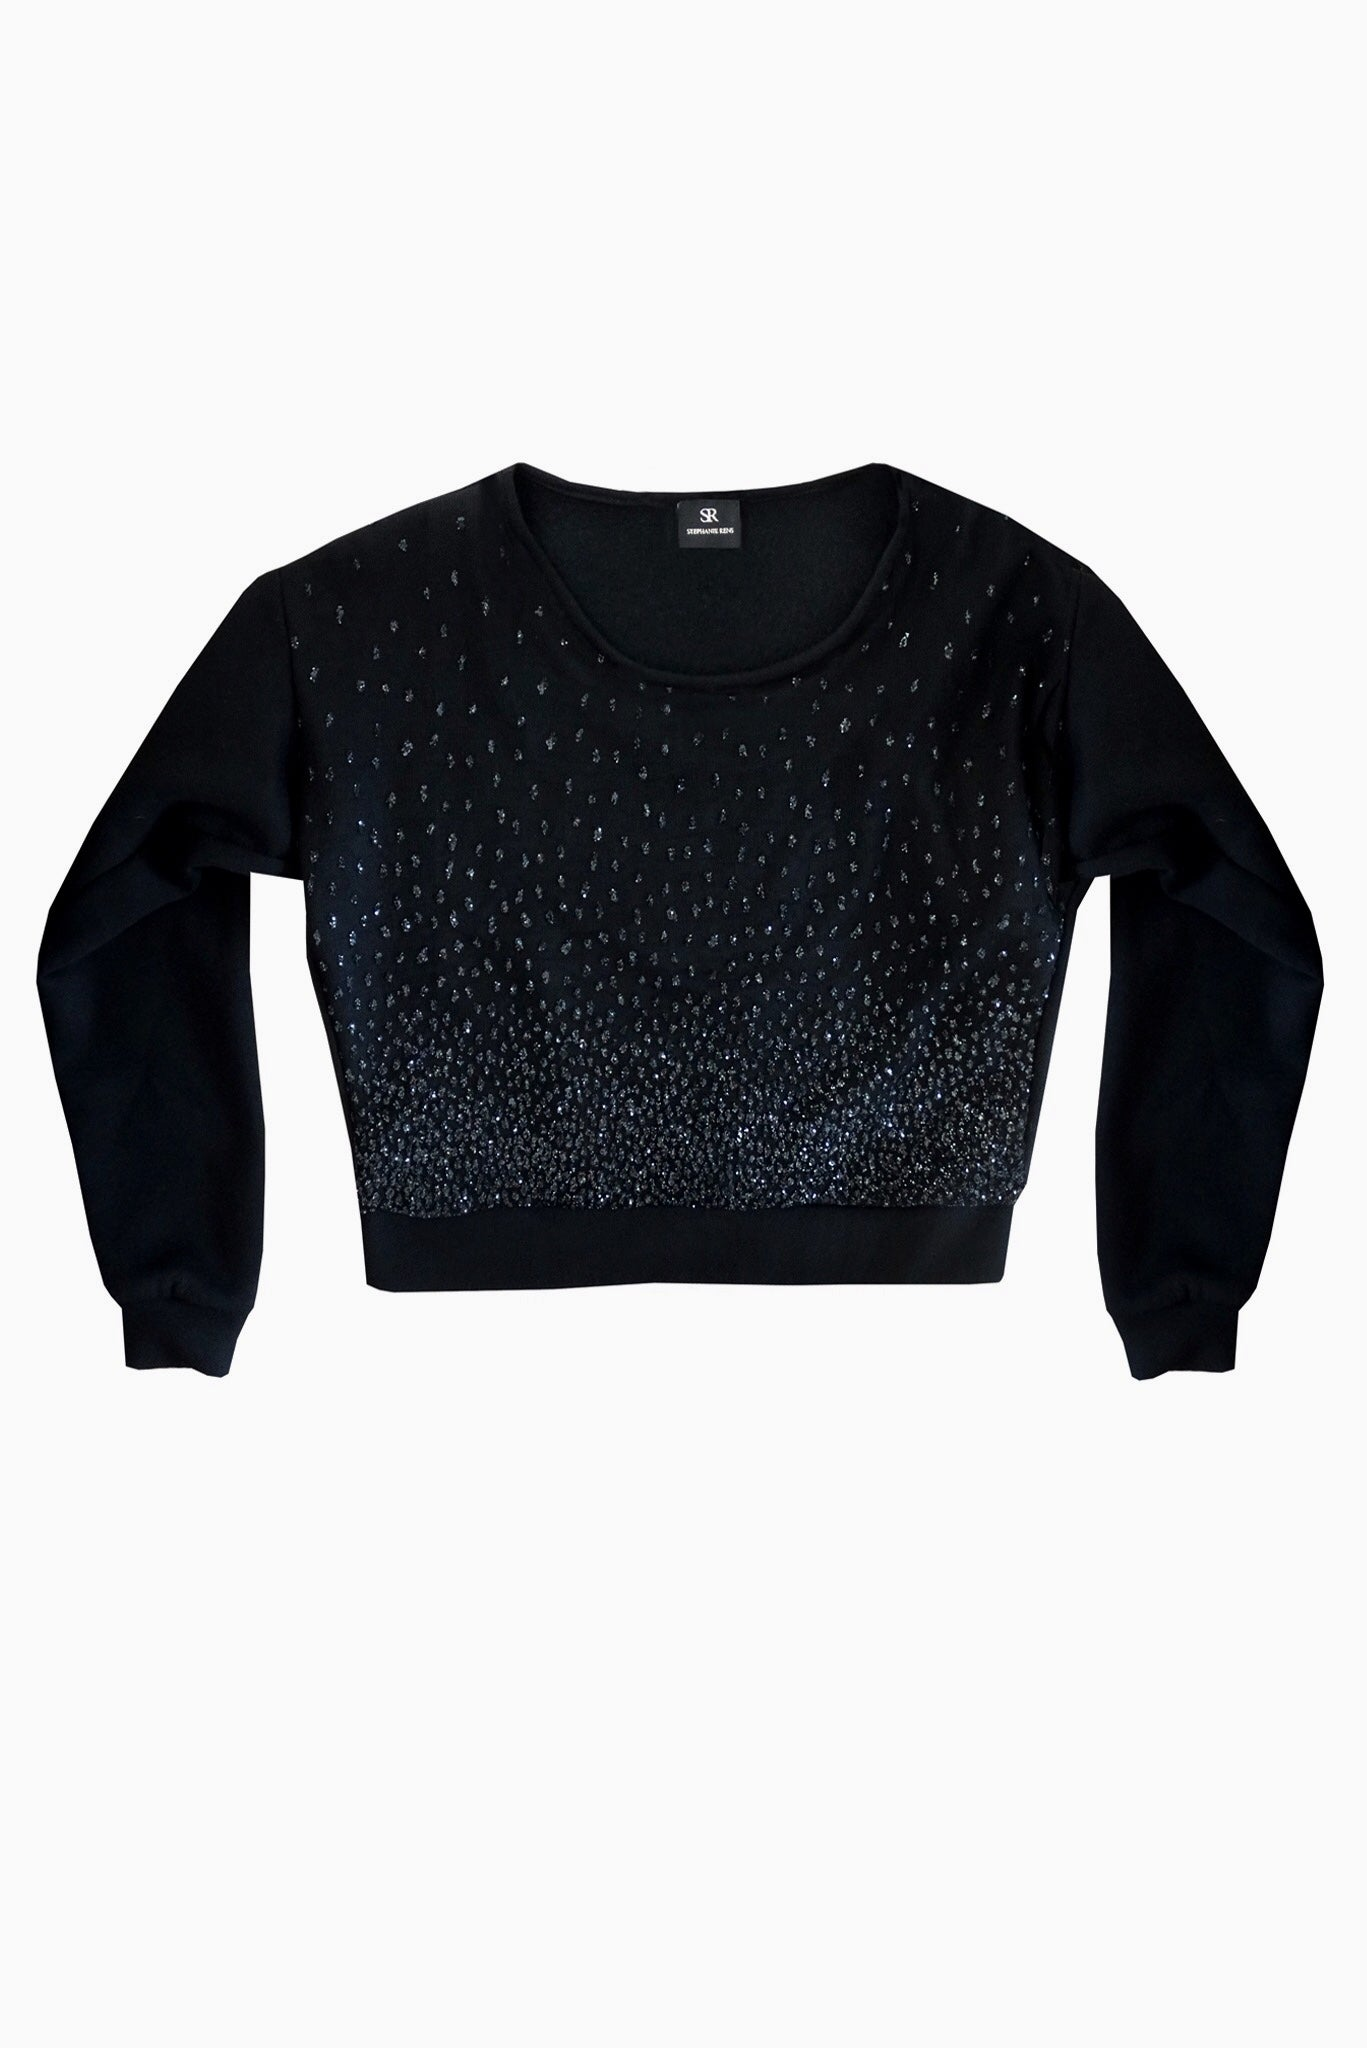 Cropped black sweater with shiny dots